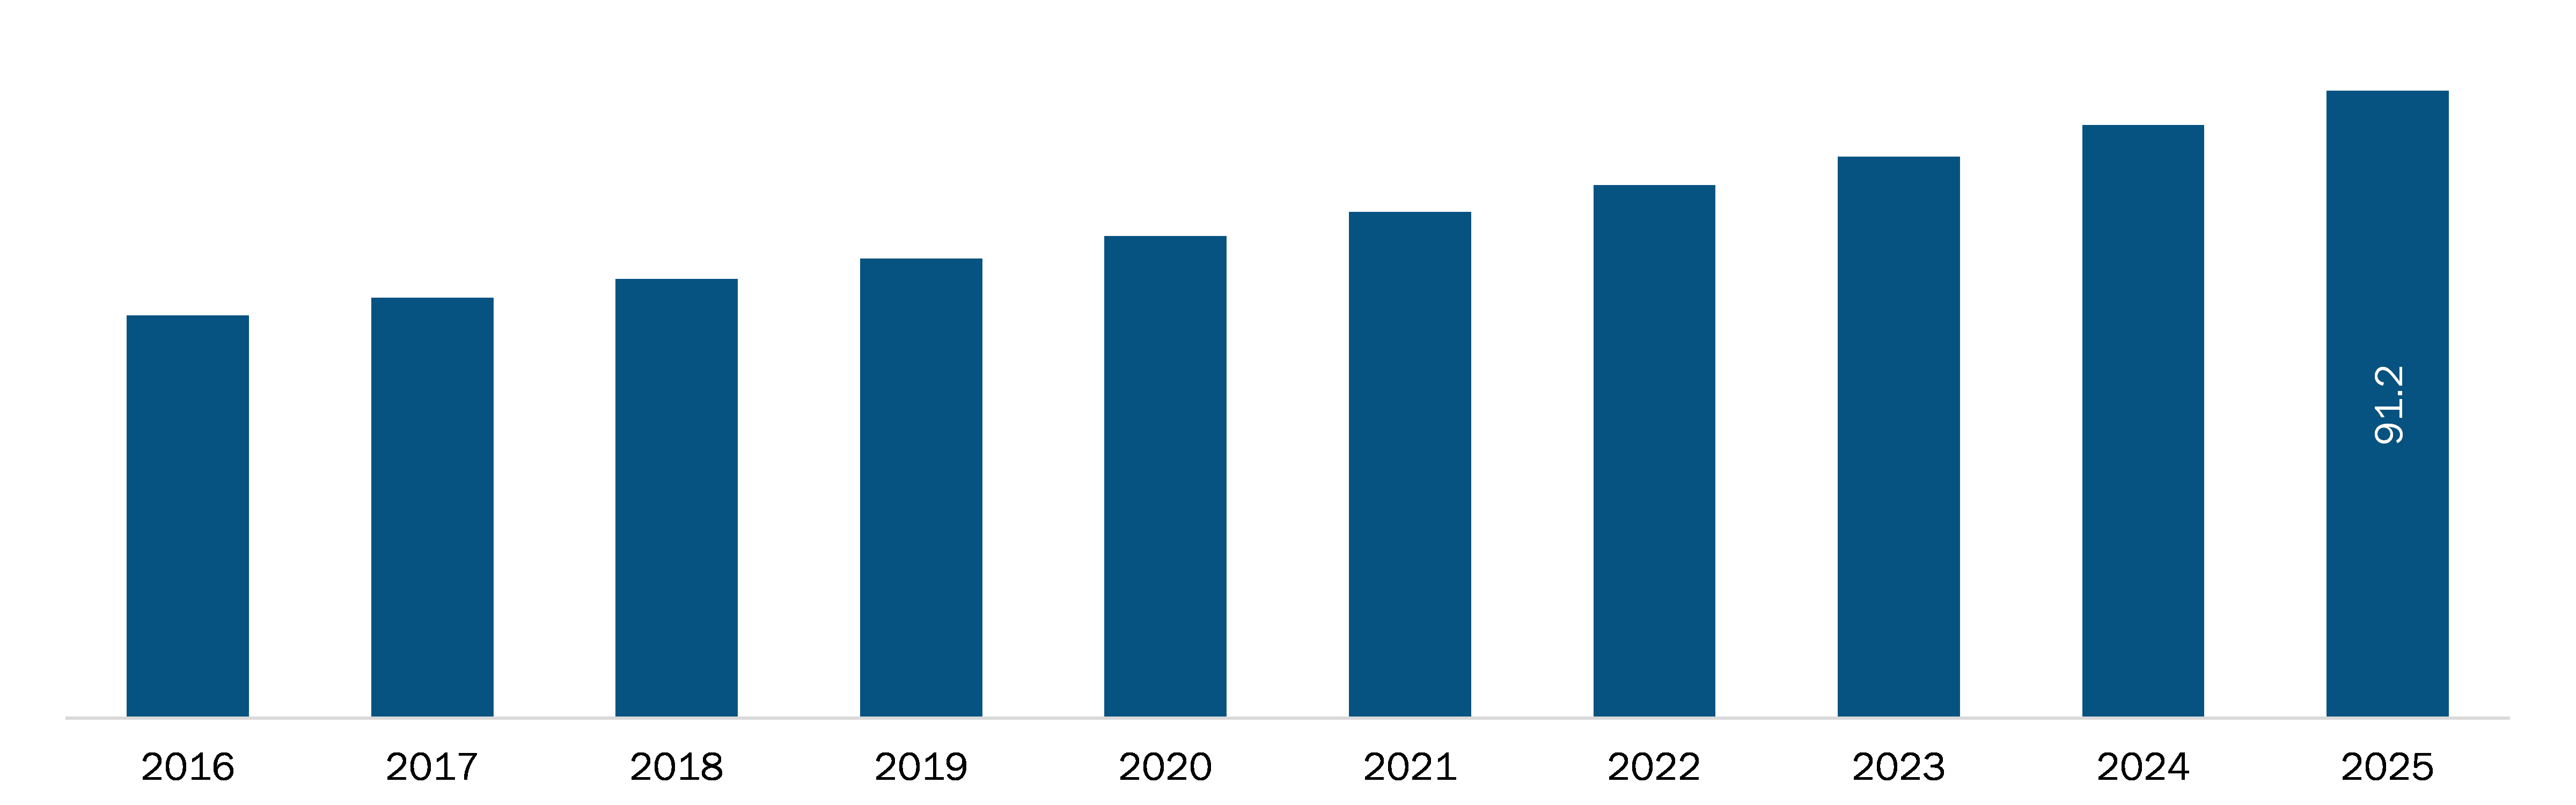 Rest of Asia Pacific Third Party Logistics Market Revenue and Forecasts to 2027 (US$ Mn)